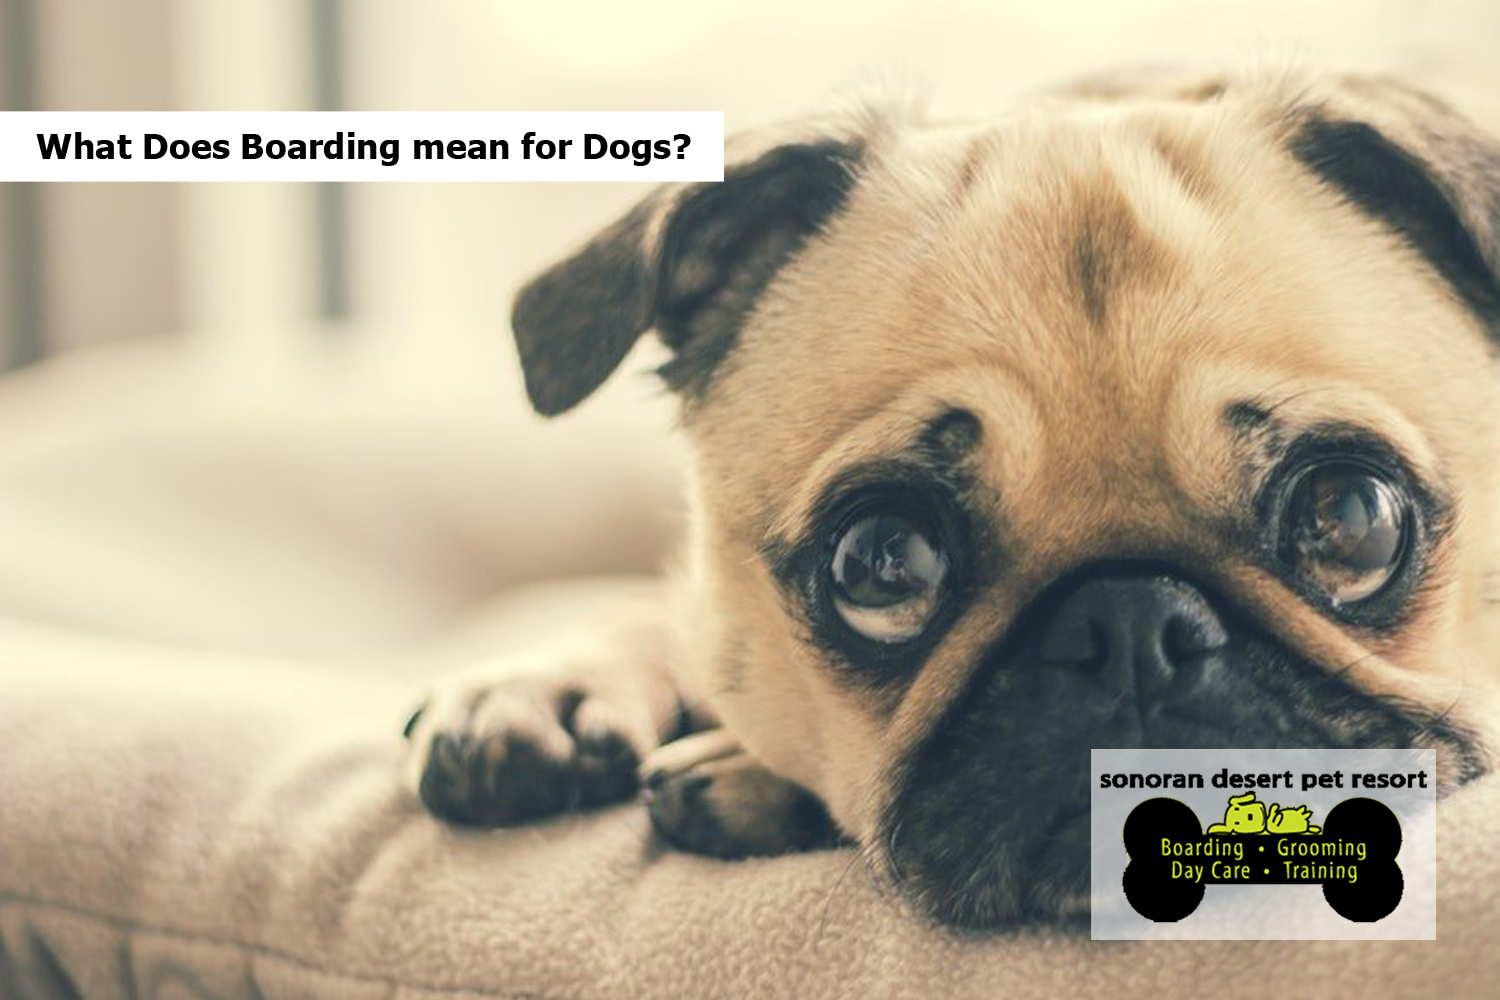 What Does Boarding mean for Dogs?